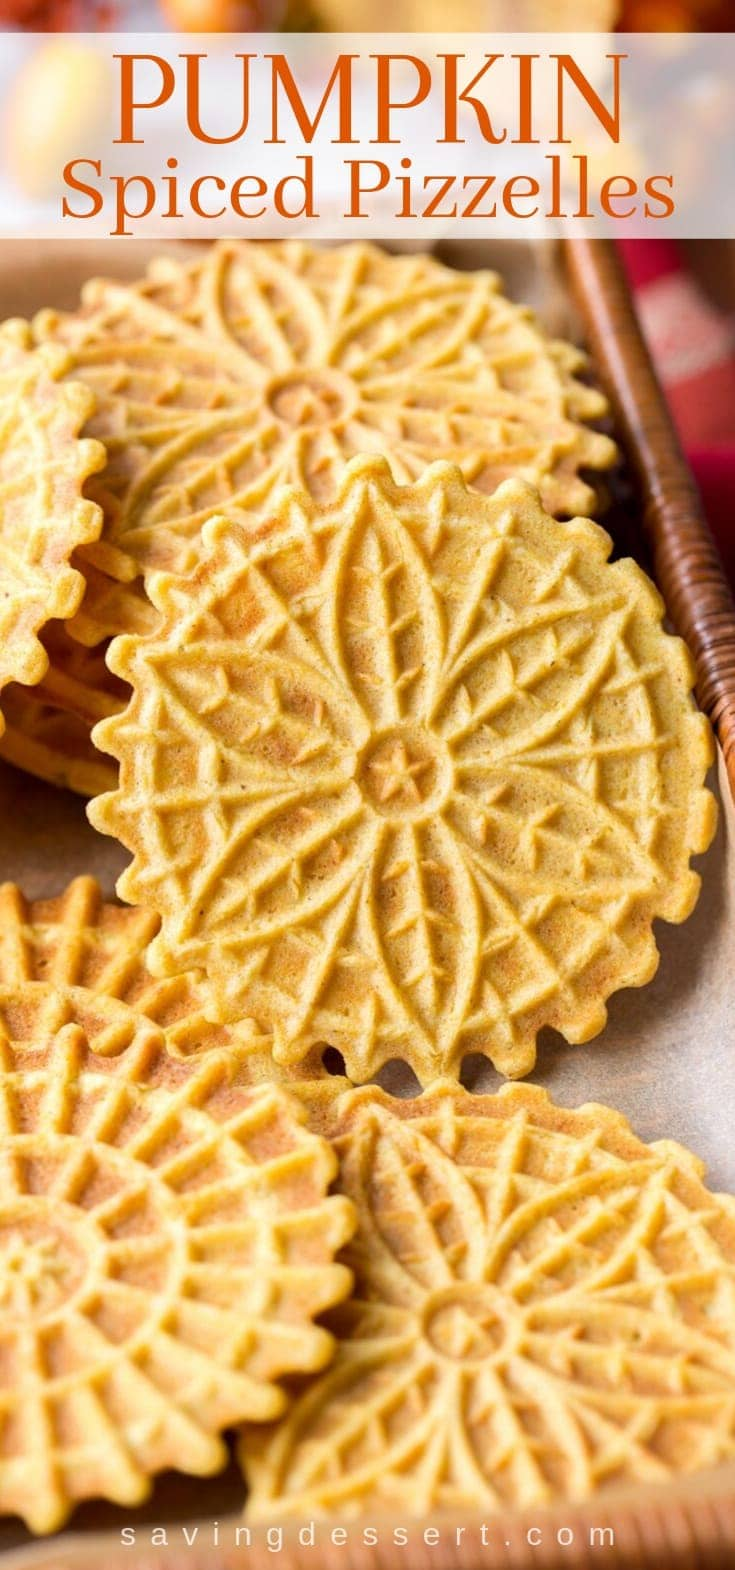 A basket filled with pumpkin spiced pizzelles